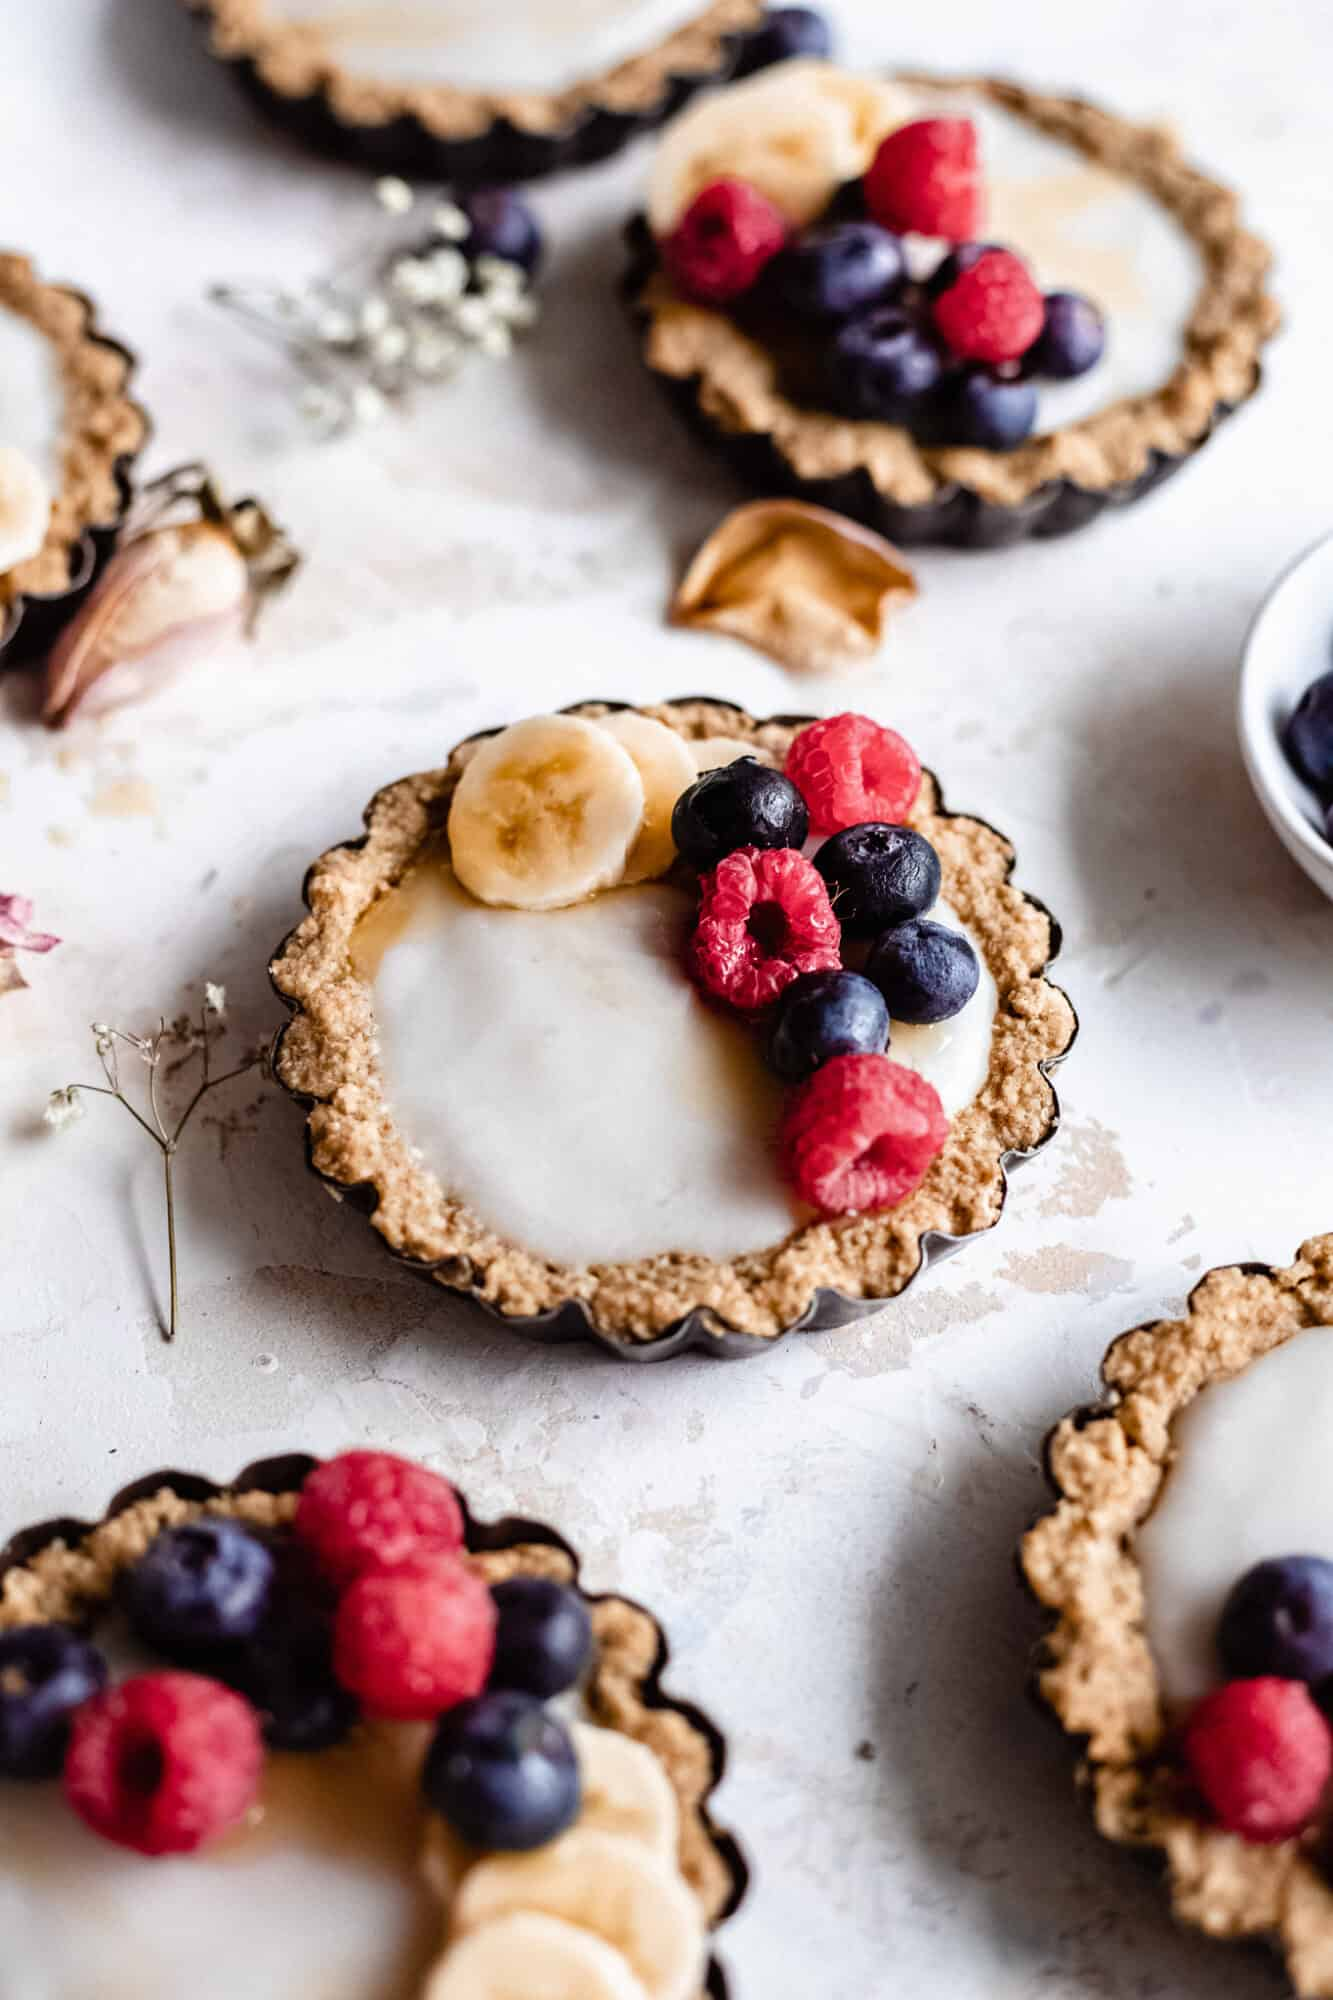 mini tarts with berries on top